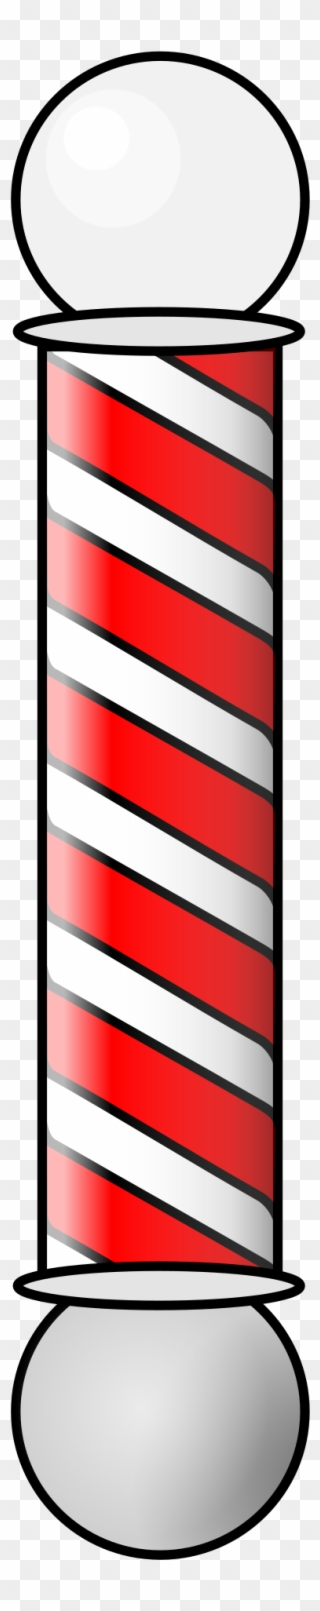 Free PNG Barber Pole Clip Art Download - PinClipart